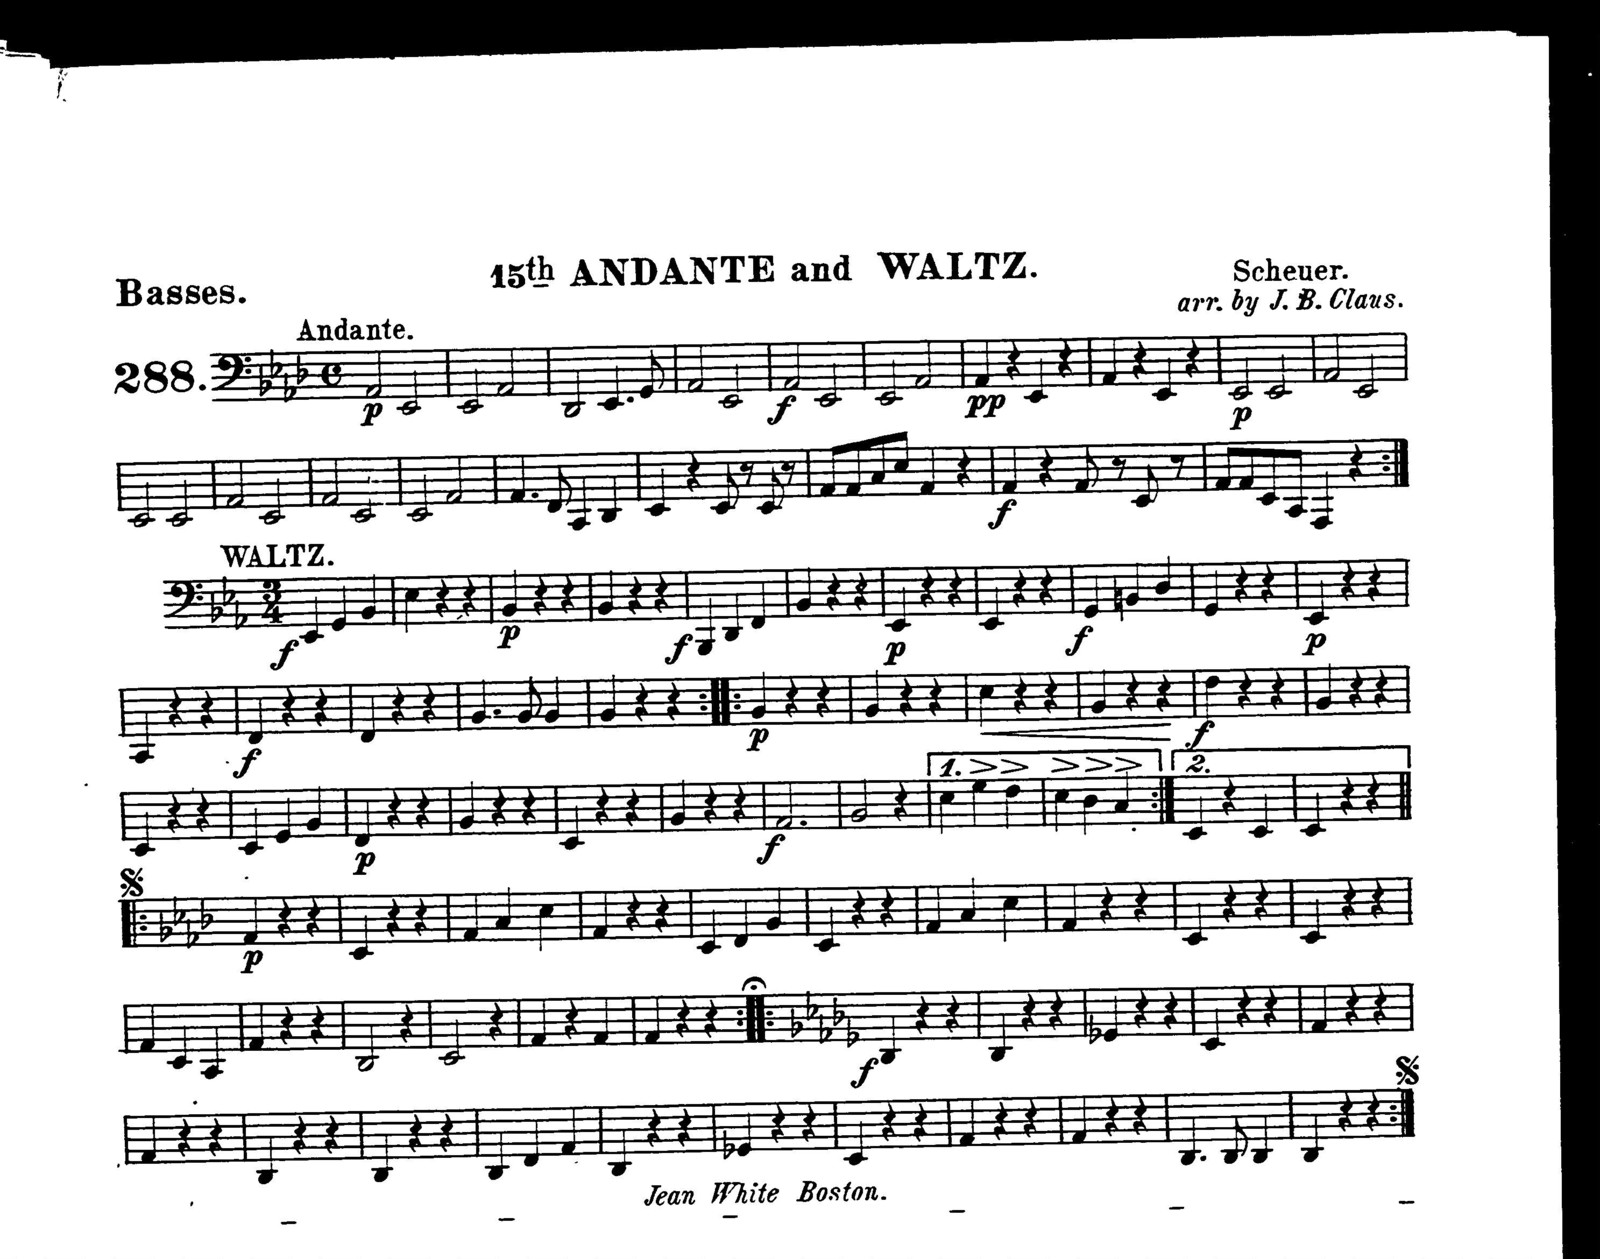 15th andante and waltz